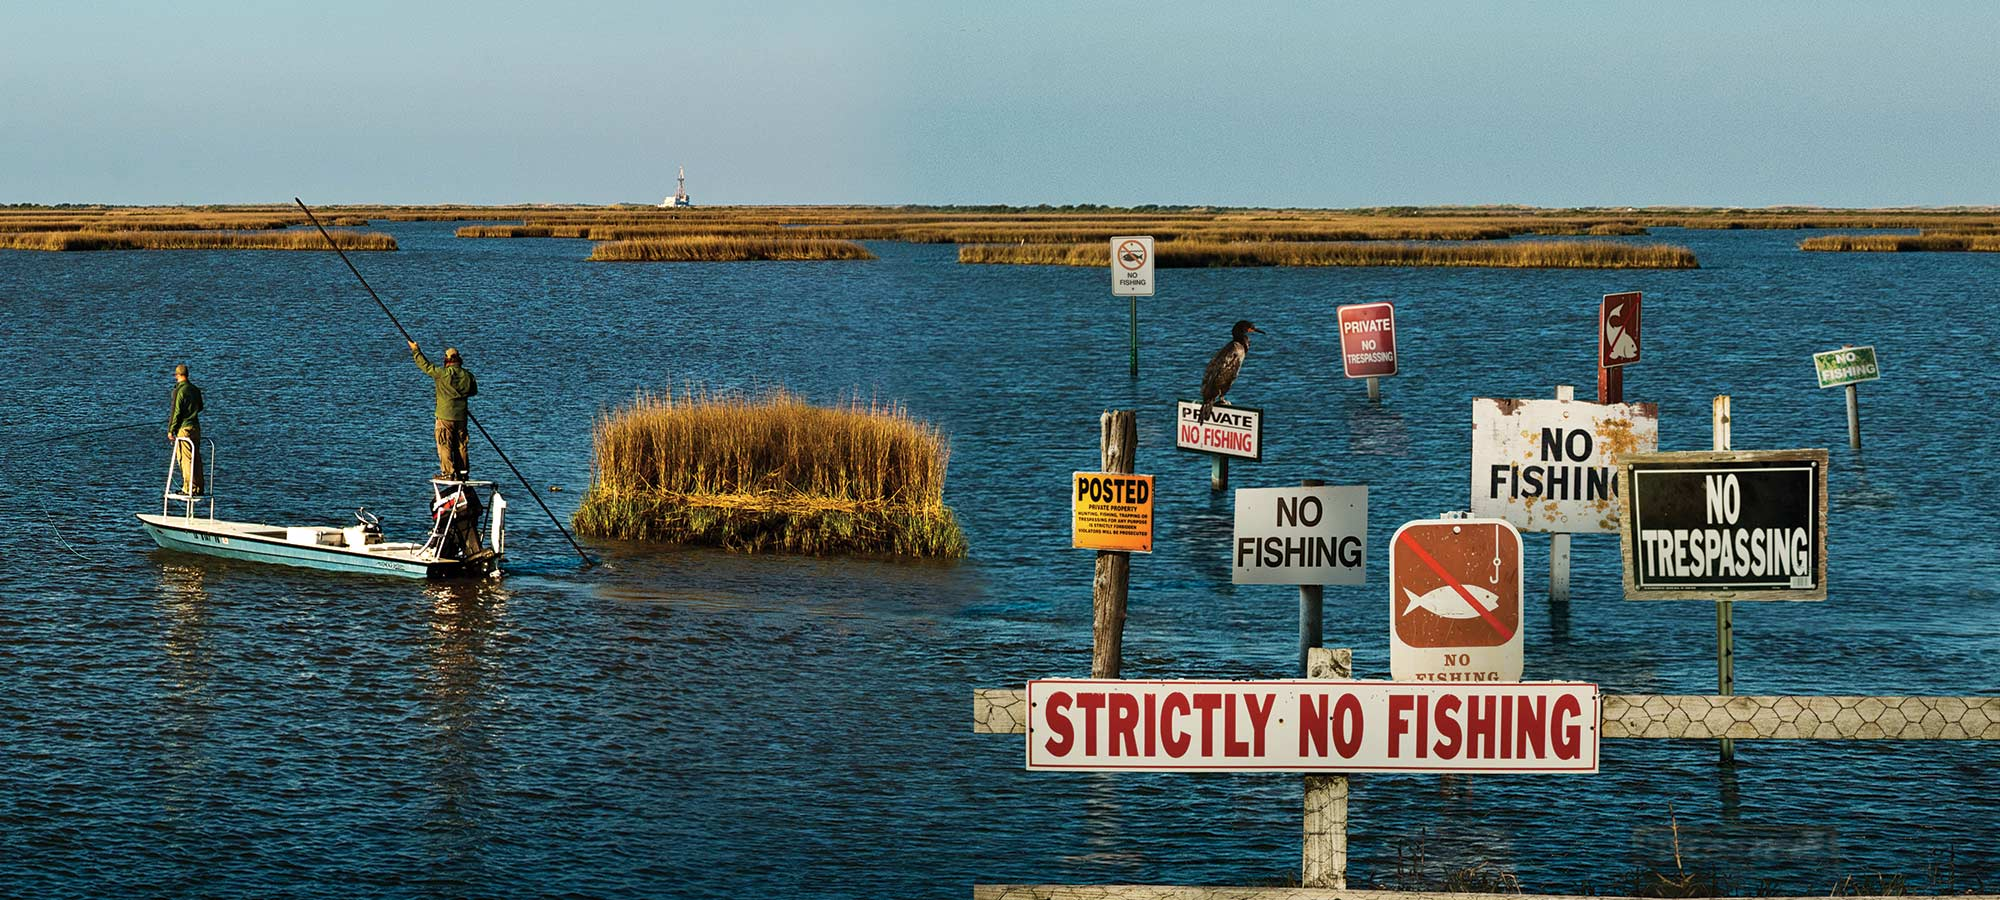 public waters no fishing signs